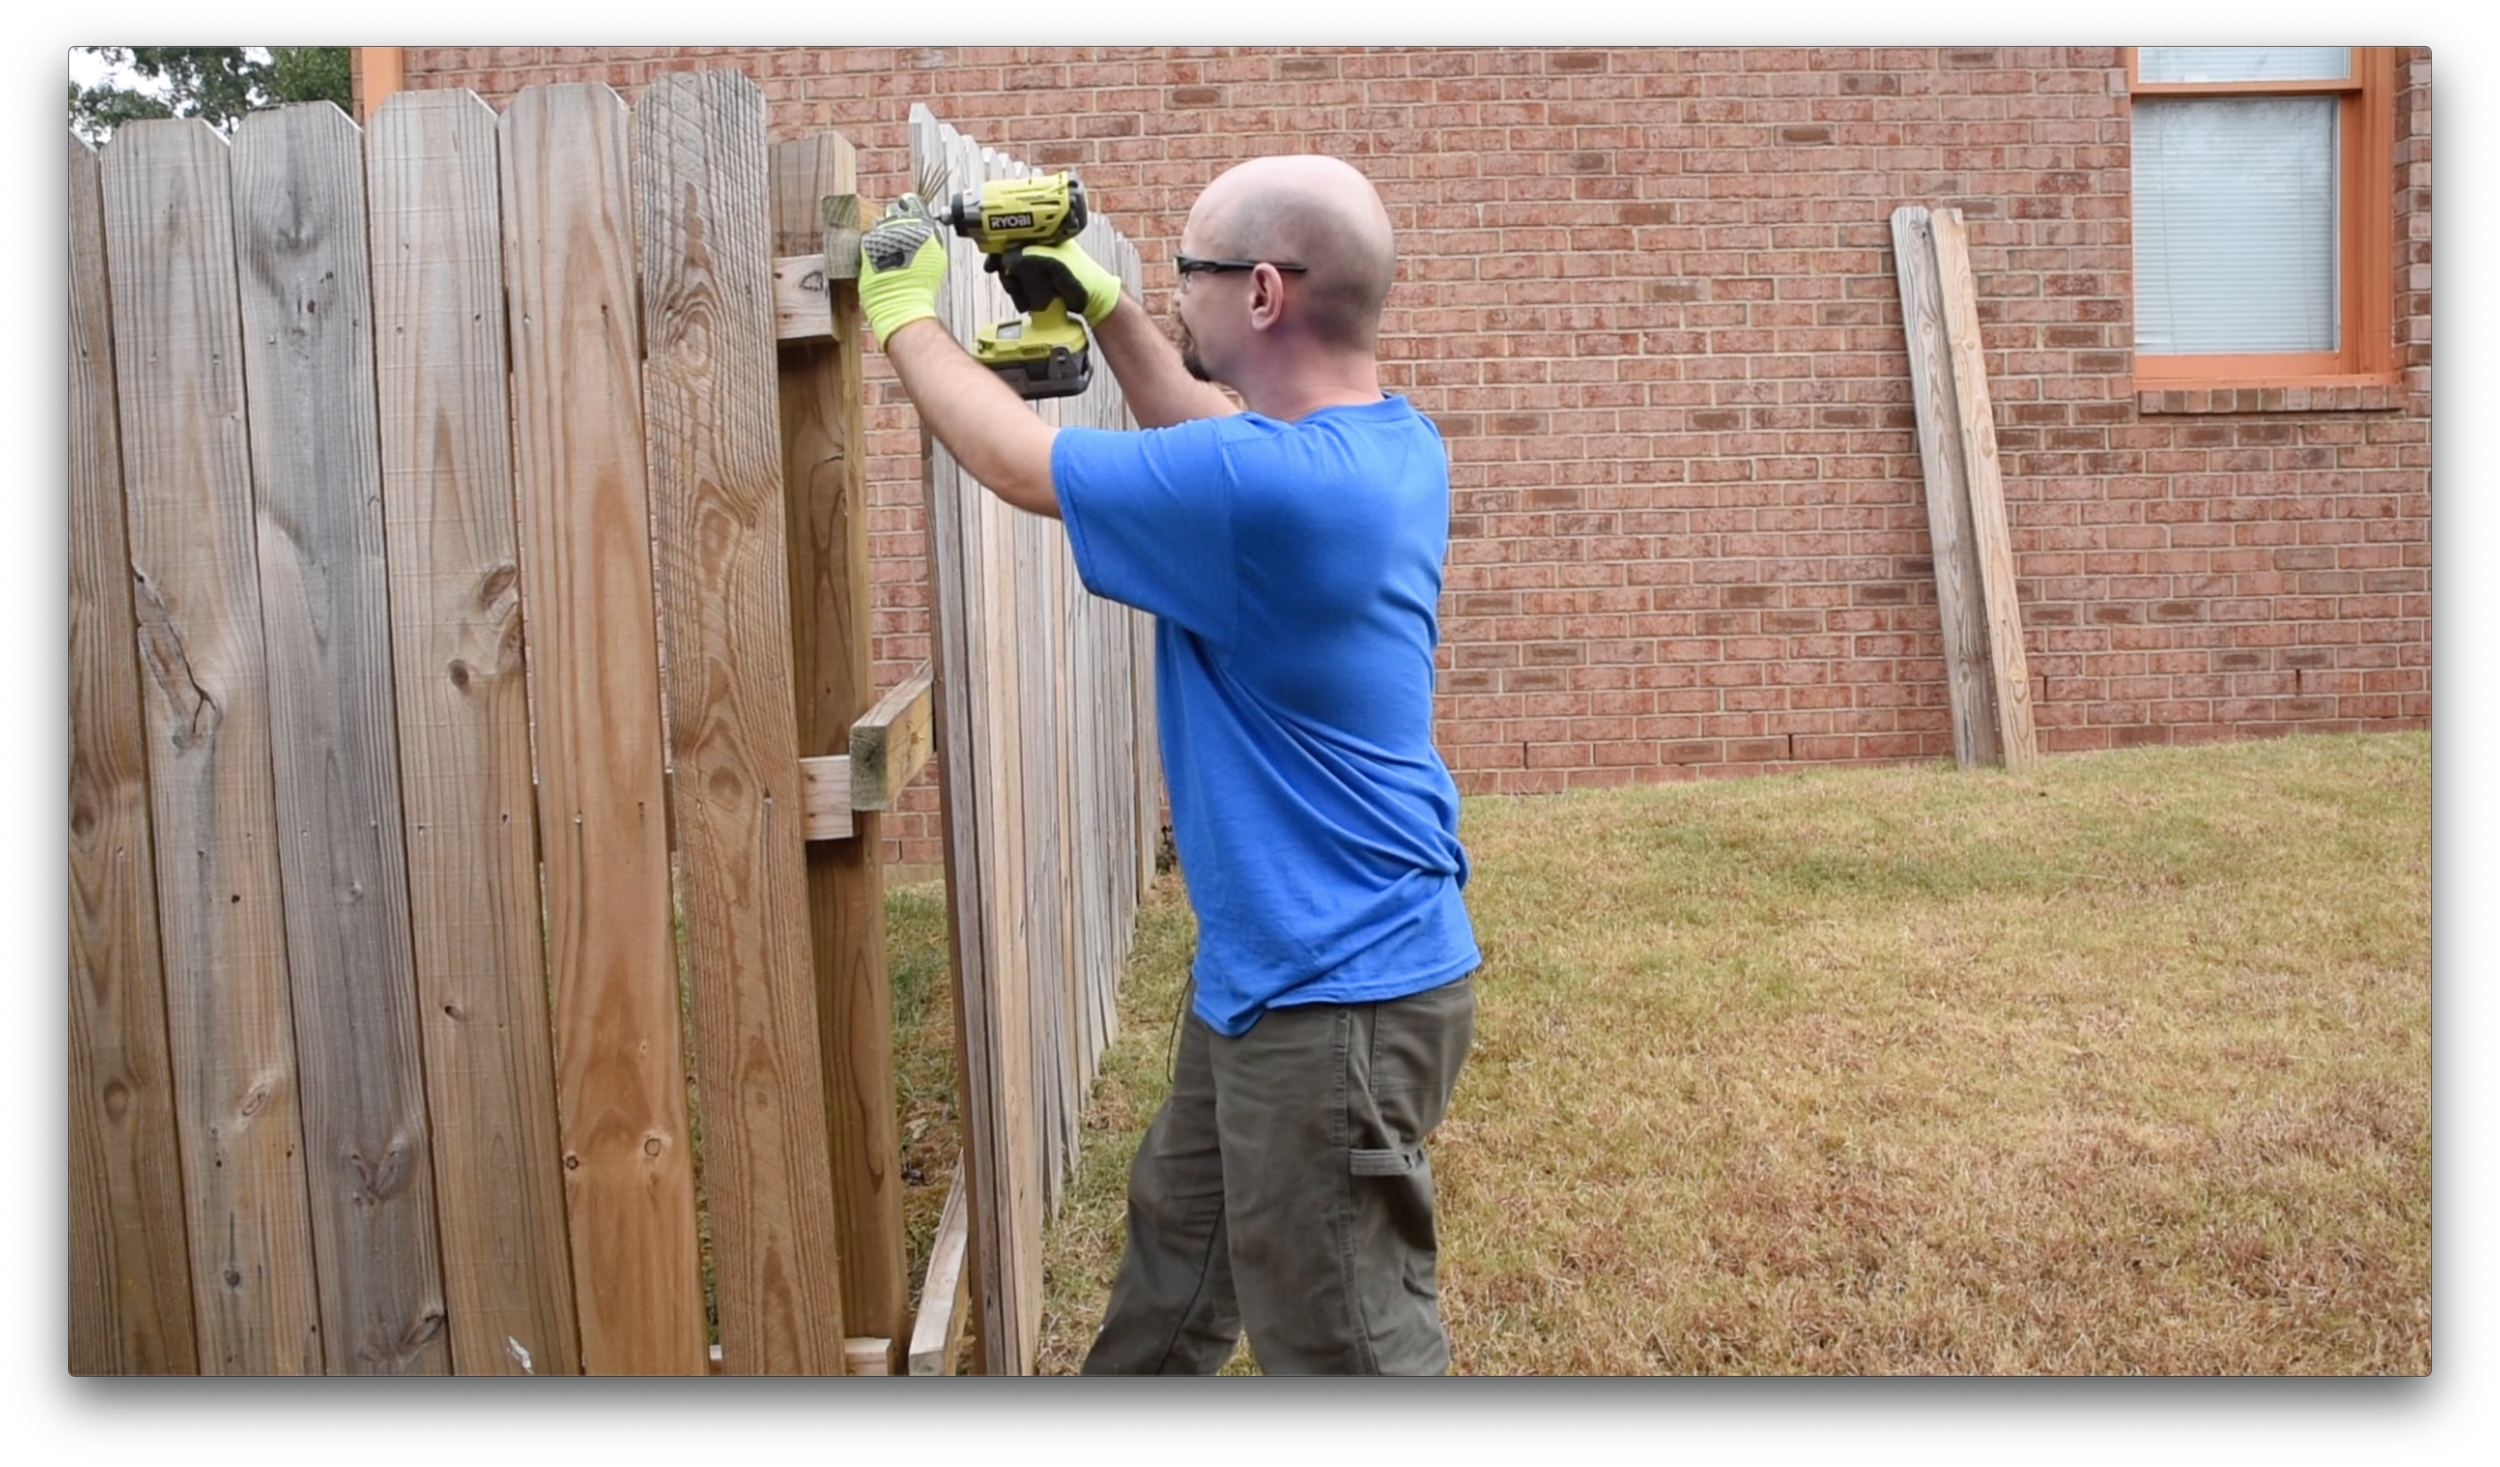 Removing the fence panels with the Ryobi One+ Impact Driver